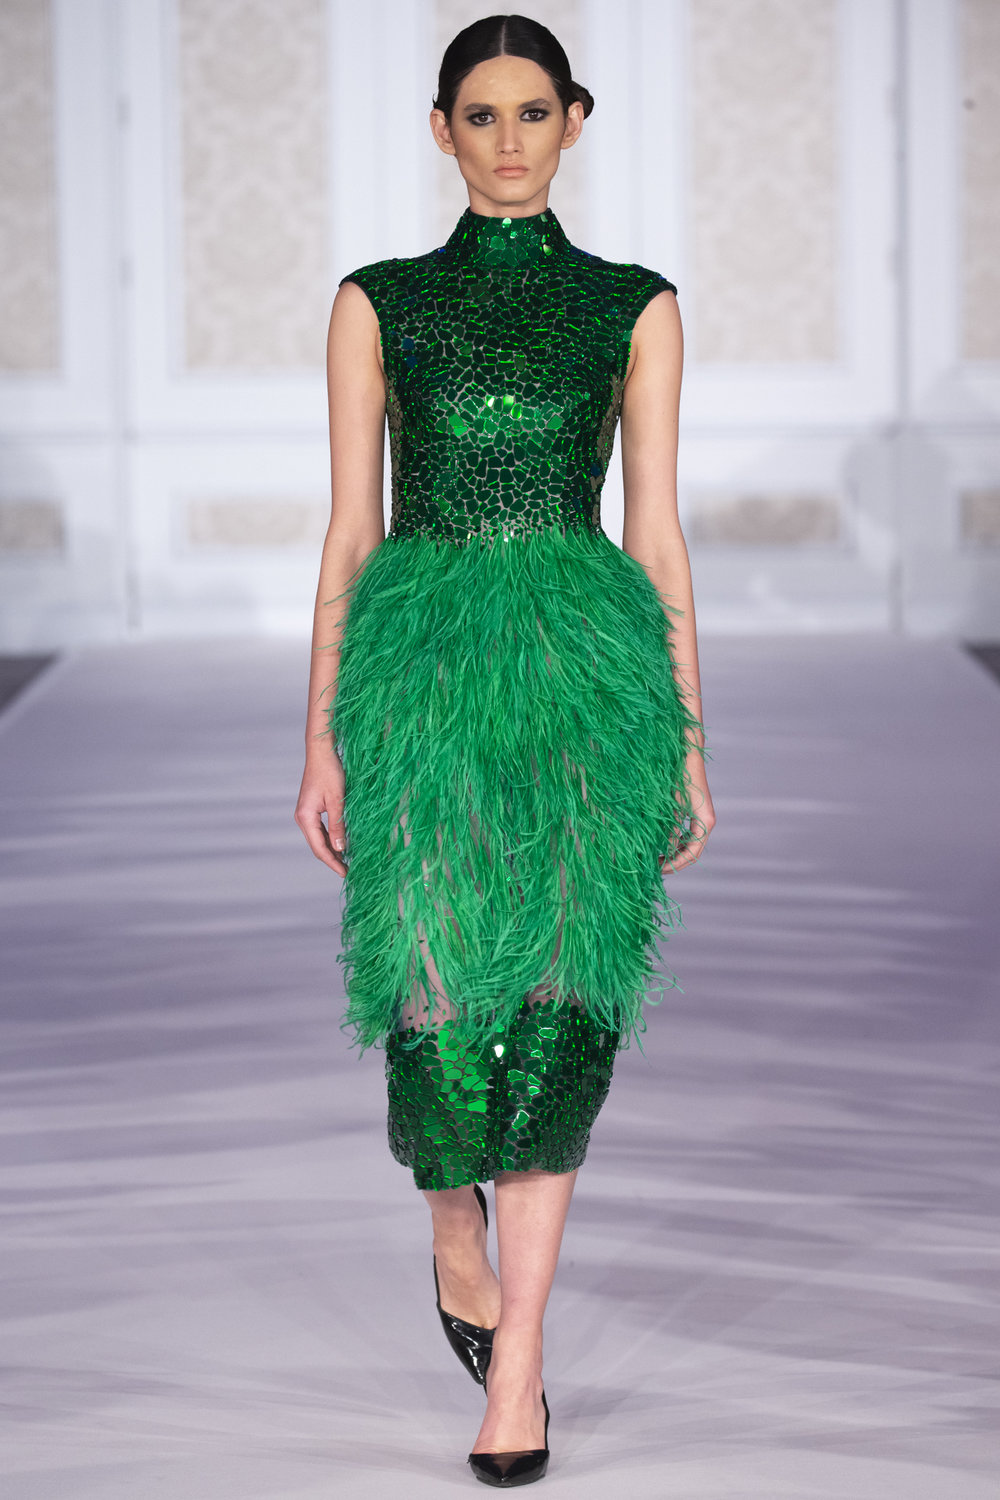 atelier zuhra | AW19 - A treasure-trove of jewel-tones in feathers, silk, satin and tulle.These gowns are the stuff of dreams. Vivid, technicolour dreams, that is. Every stone, from emerald to amethyst, ruby to sapphire and yellow diamond, were represented in these fantasy fashion frocks.One model, one dress. The extravagance was real, and the setting, The Connaught Rooms, suitably opulent.Photos: Simon Armstrong